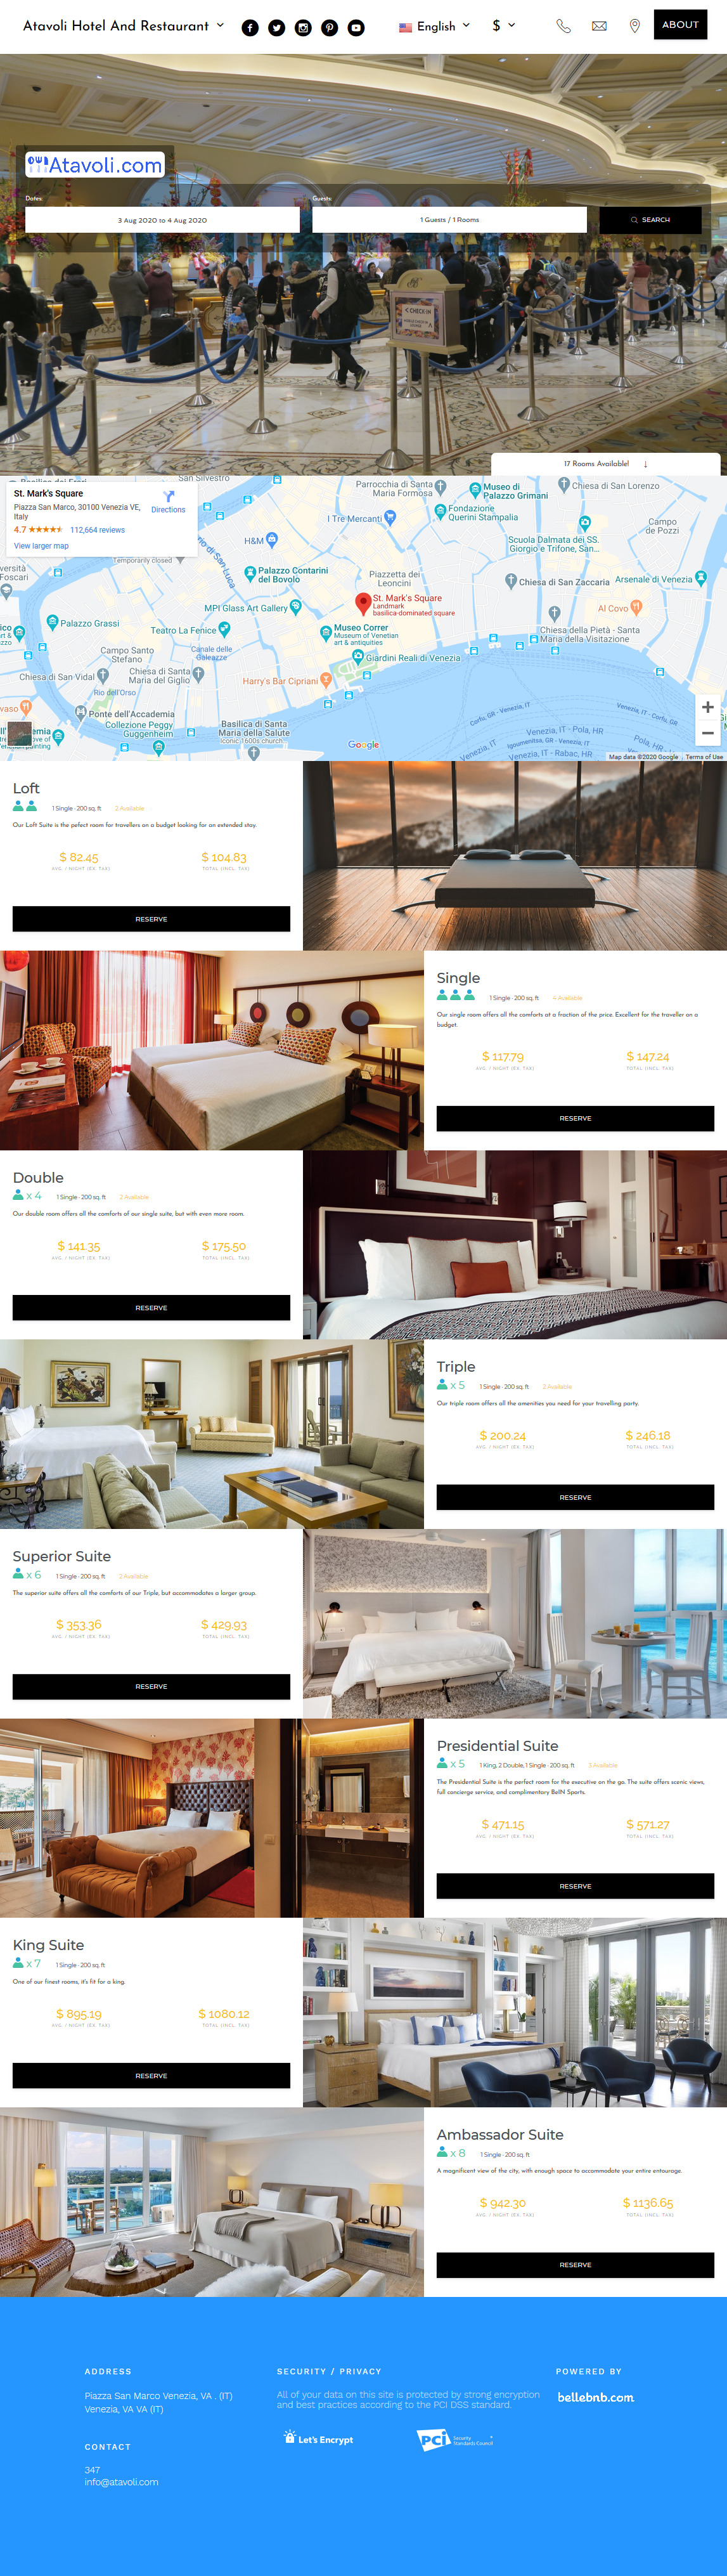 White Label Hotel Booking Engine